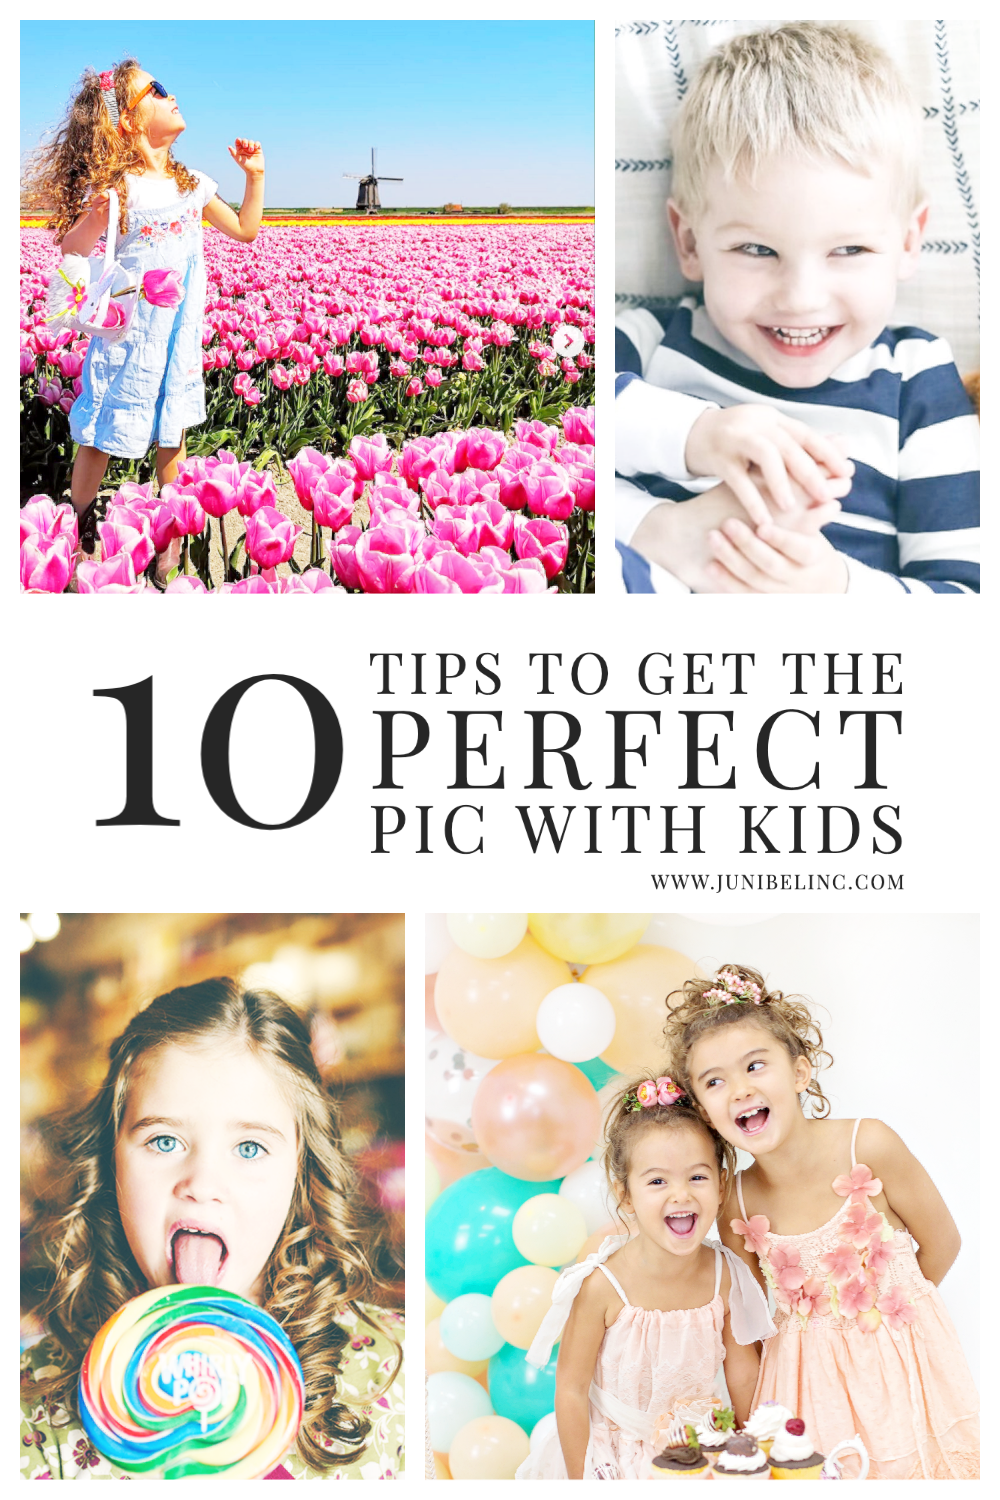 Top tips to get the perfect pic photo shot with kids children